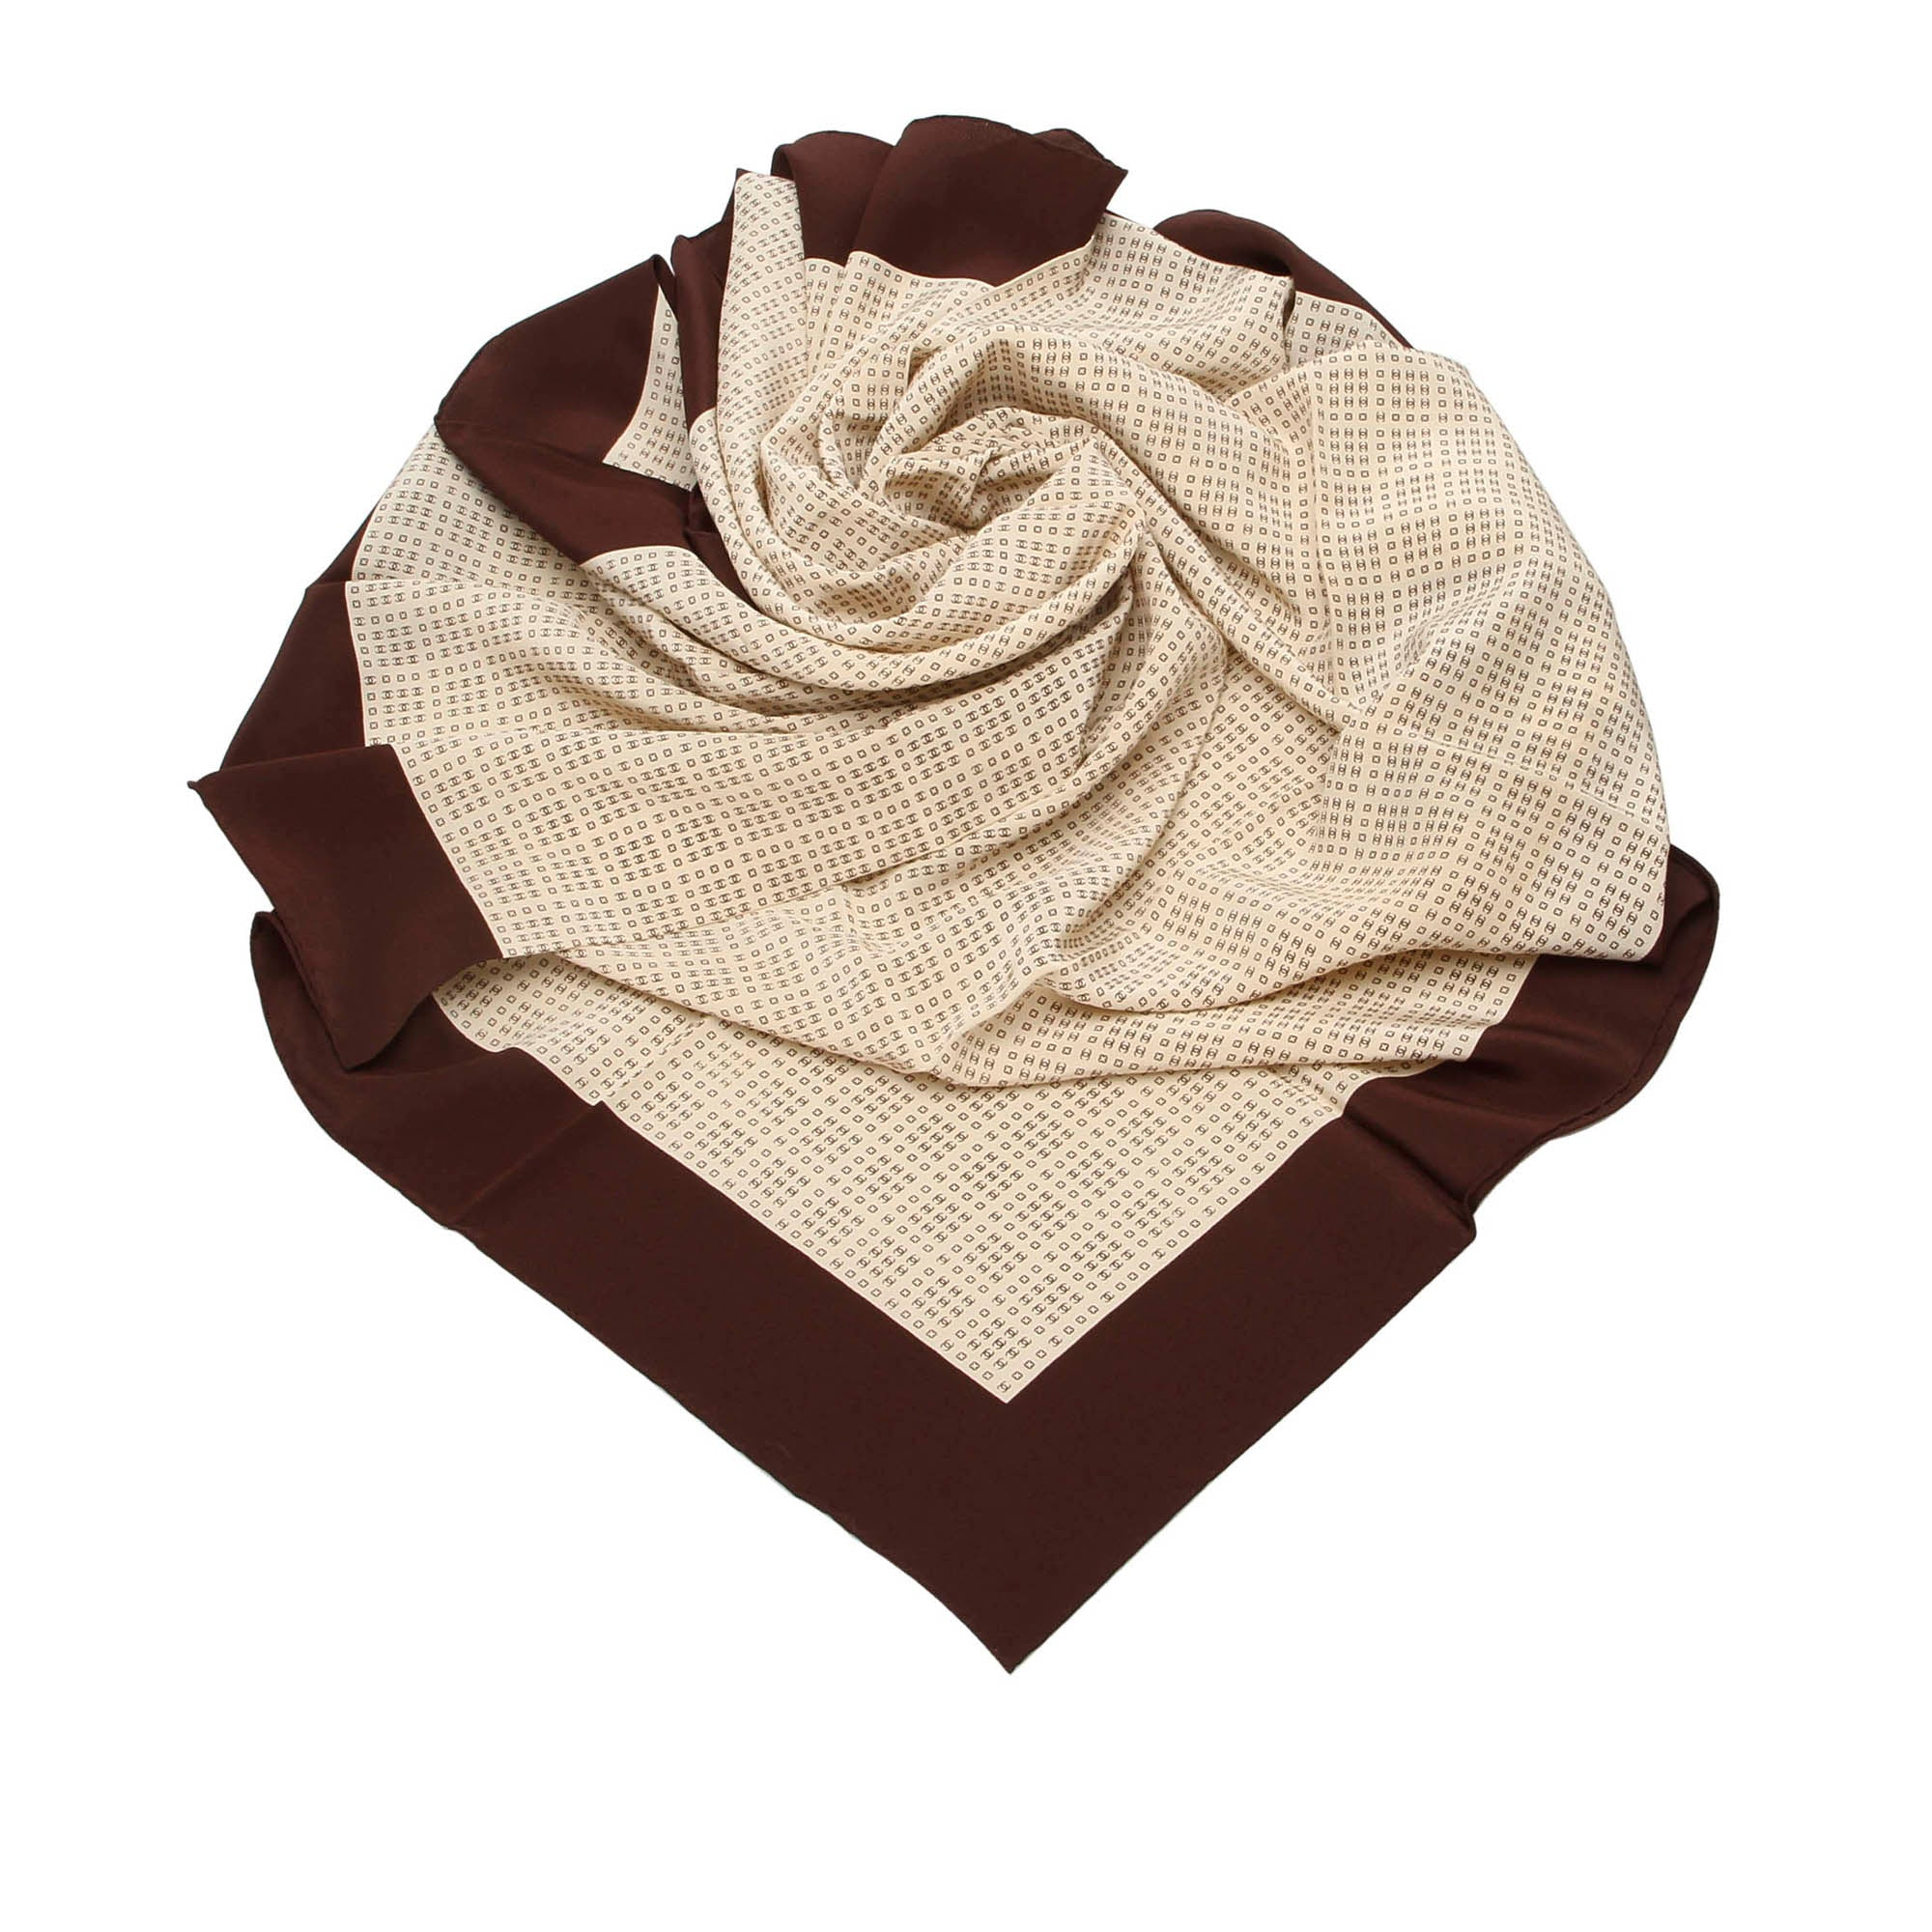 Chanel Brown Printed Silk Scarf